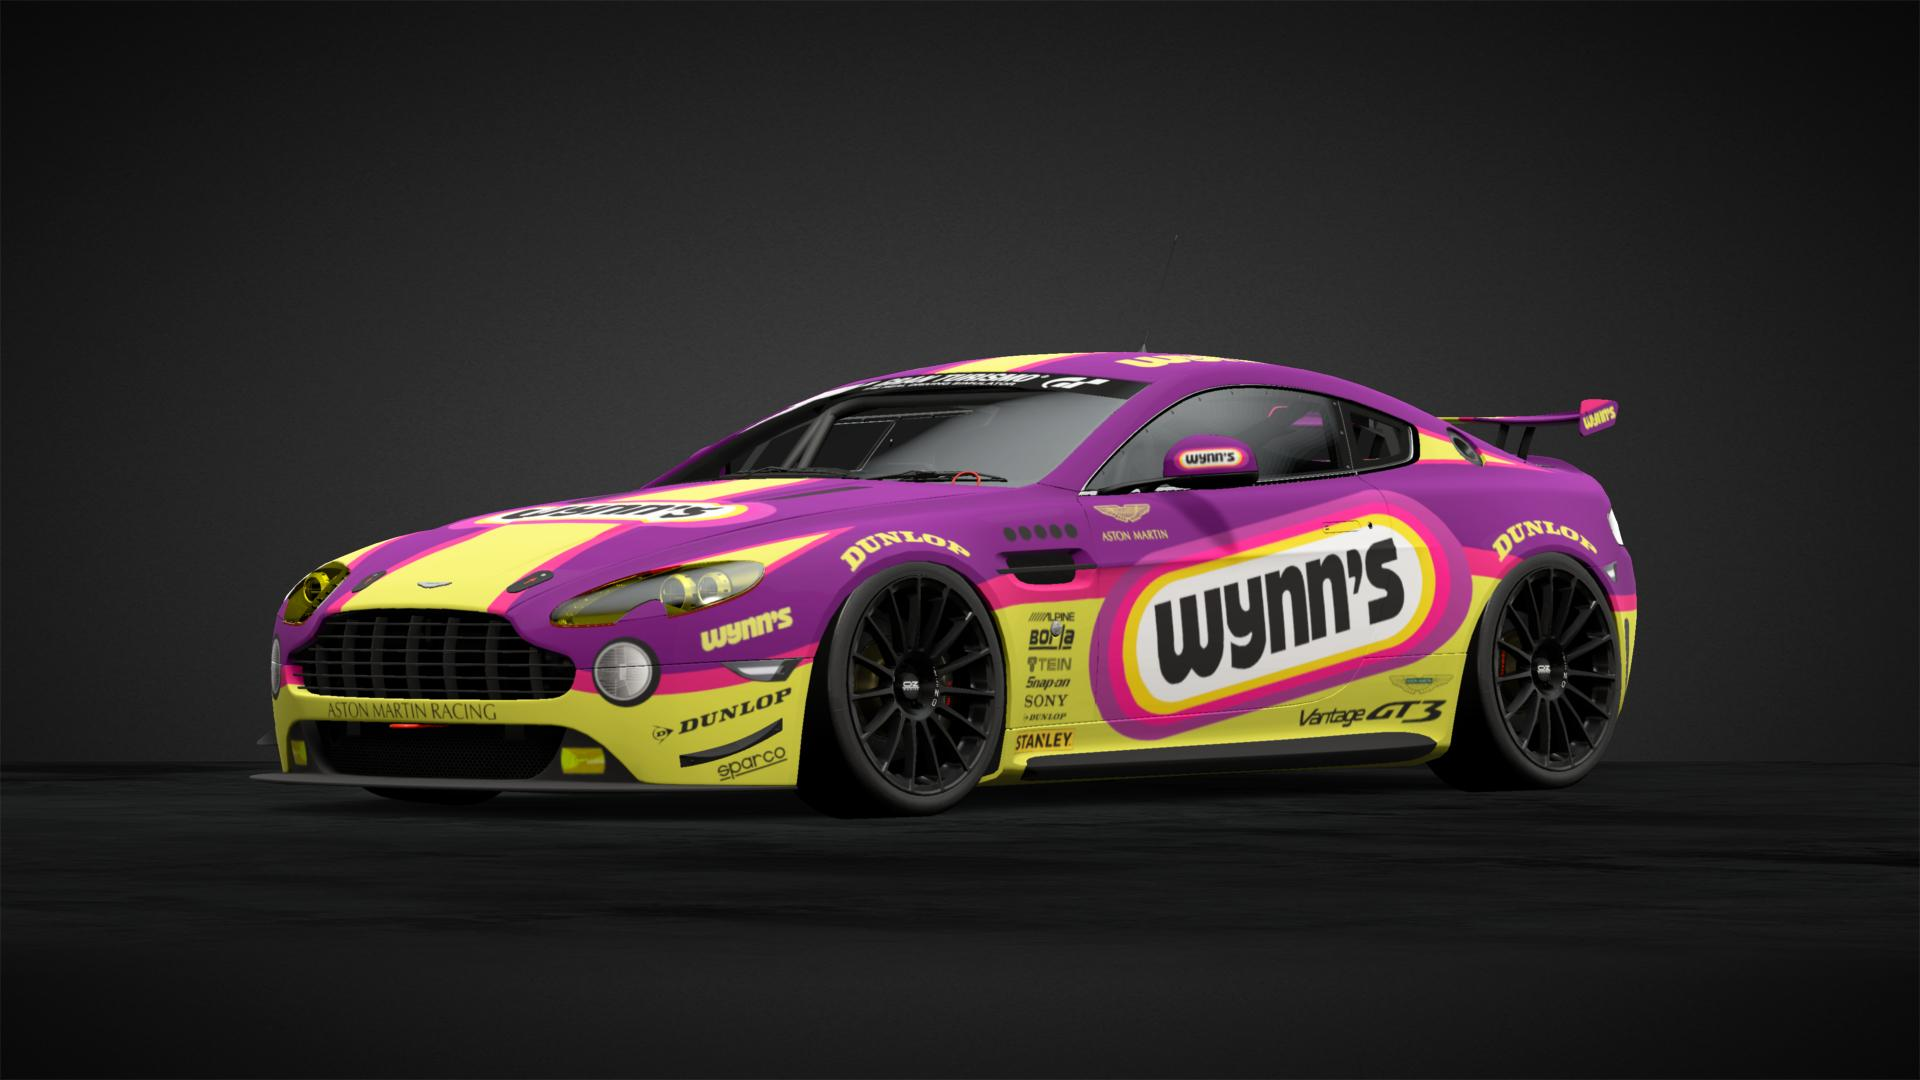 Aston Martin Wynn S After Wash Car Livery By Lucybresil Community Gran Turismo Sport